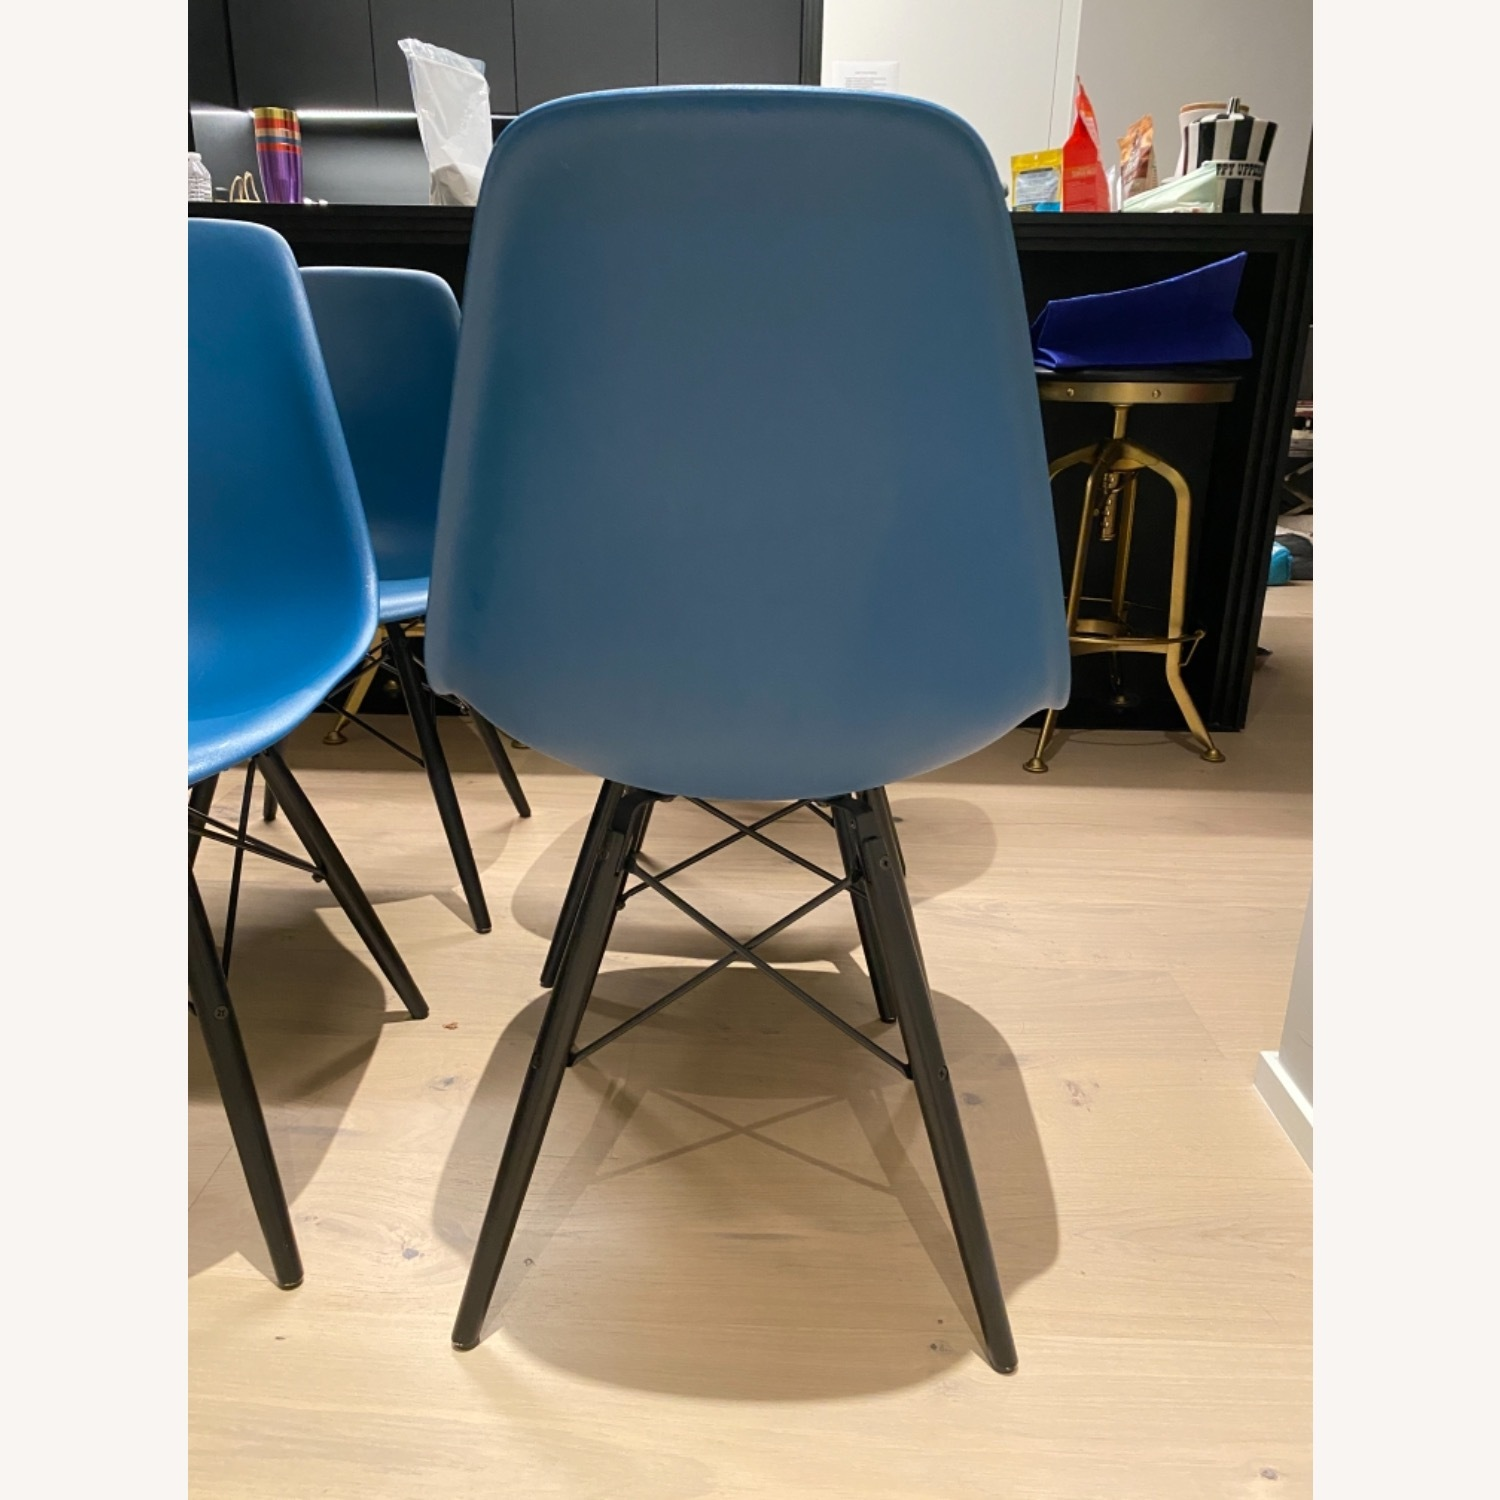 4 x Herman Miller Eames Molded Plastic Side Chair - image-19